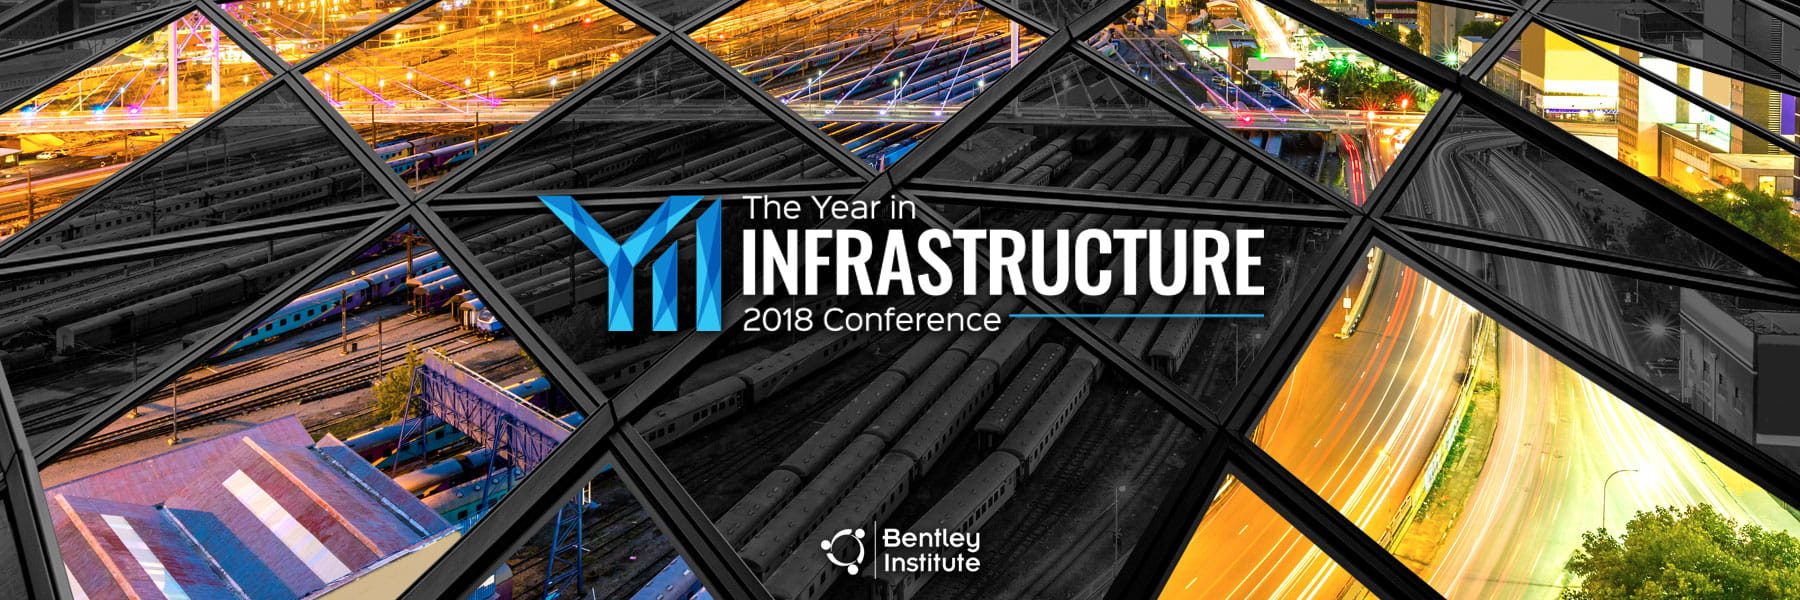 Year in Infrastructure (YII) 2019 Conference - Video Gallery